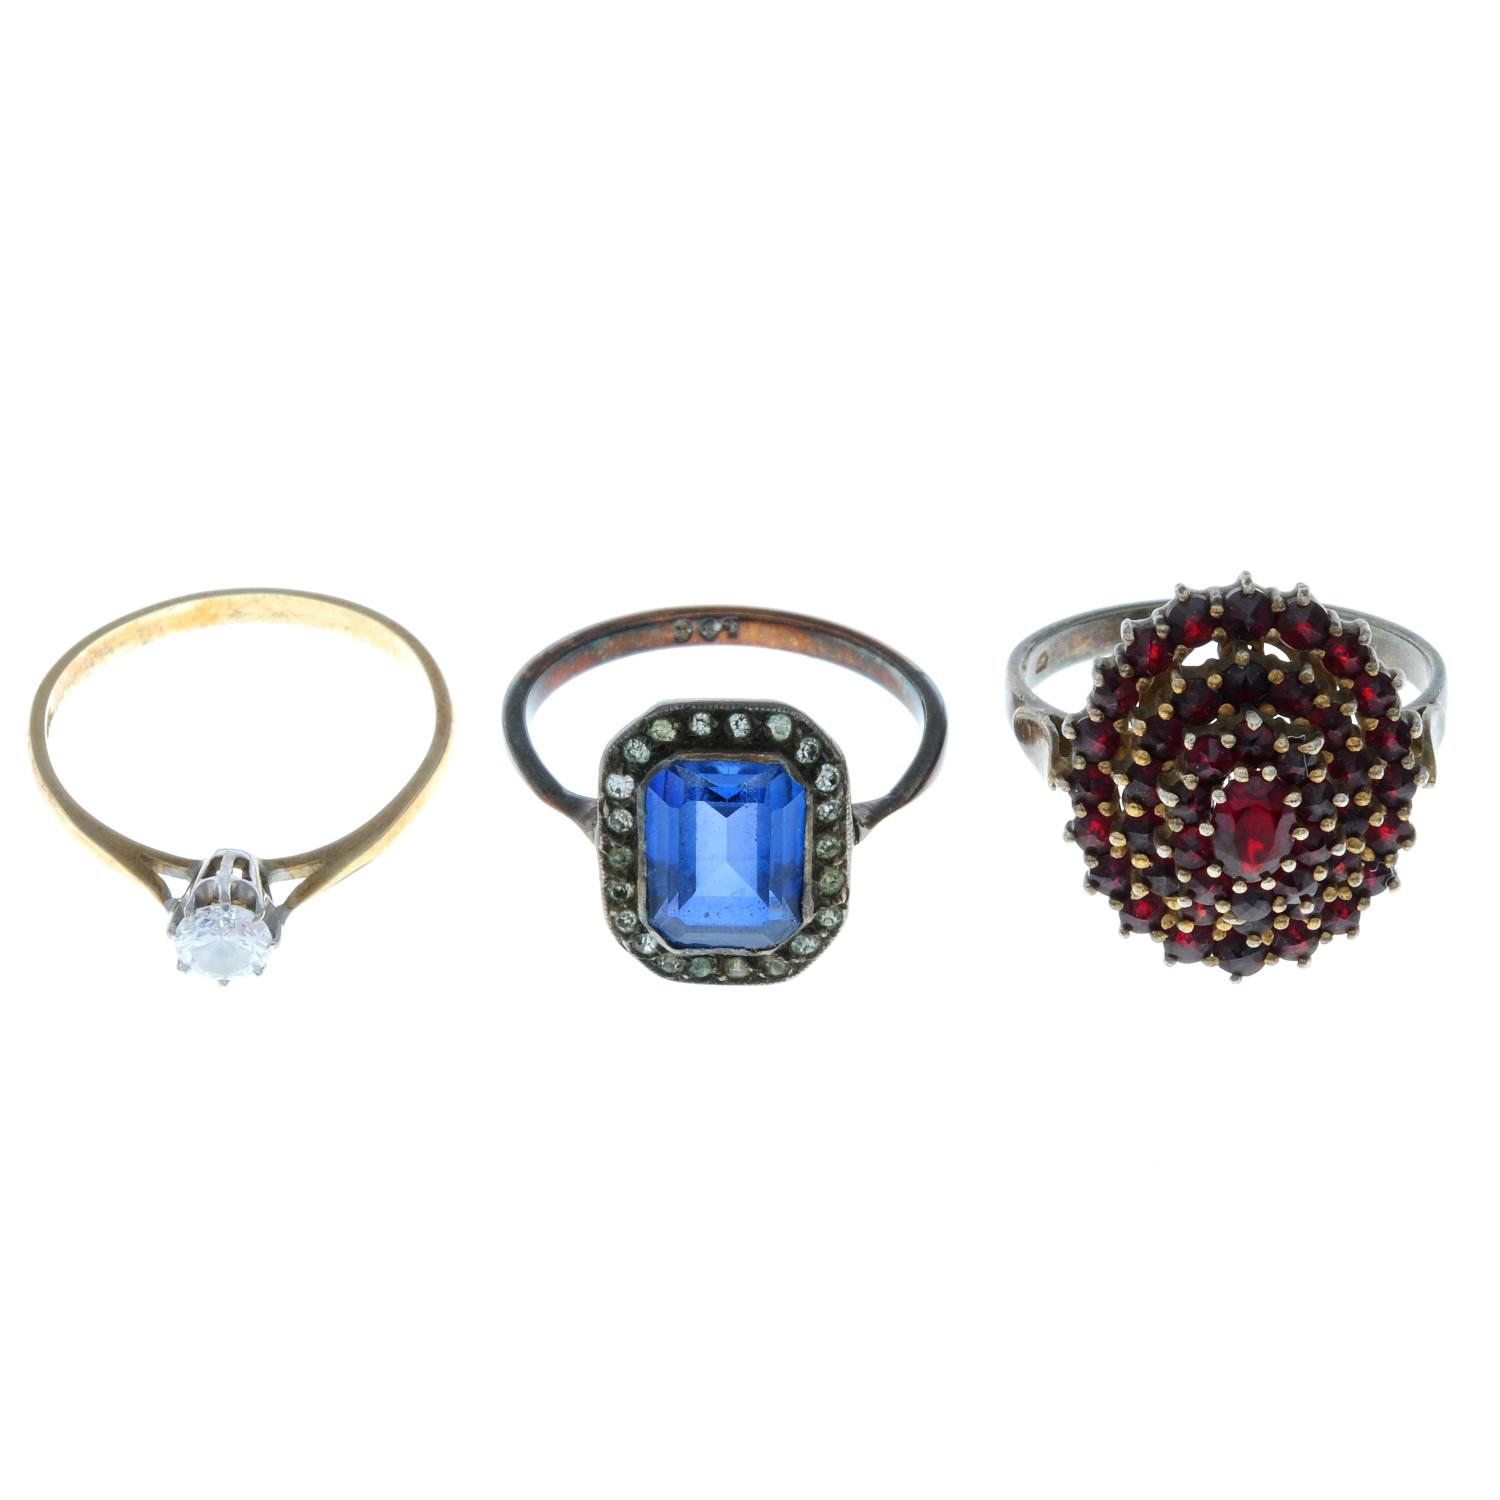 Twelve early 20th century and later rings, to include an early 20th century garnet cluster ring.